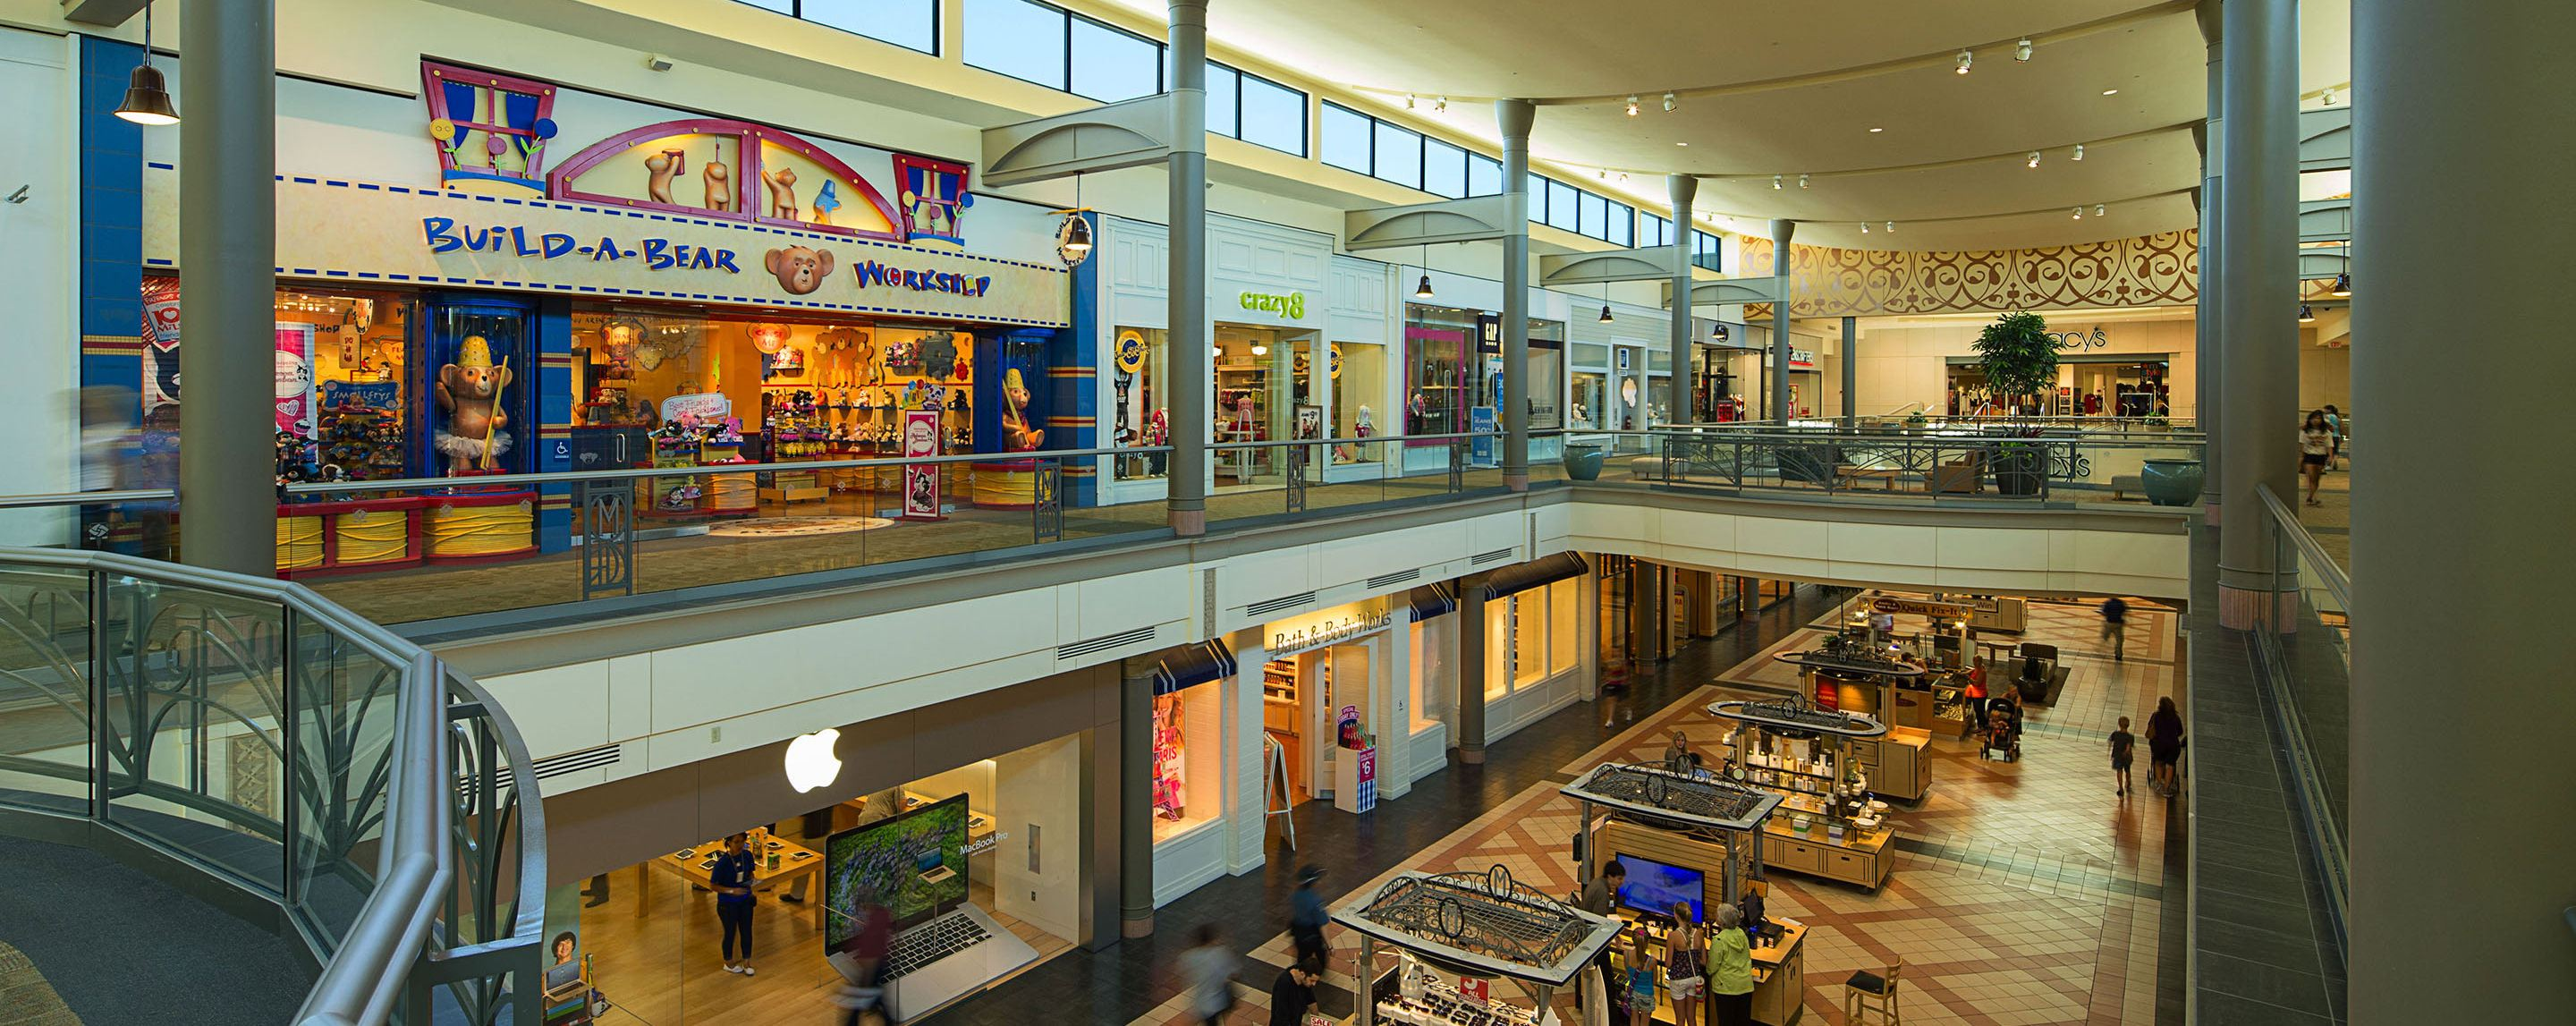 A Build a Bear store standing on the second floor in a shopping mall looks over the court below.